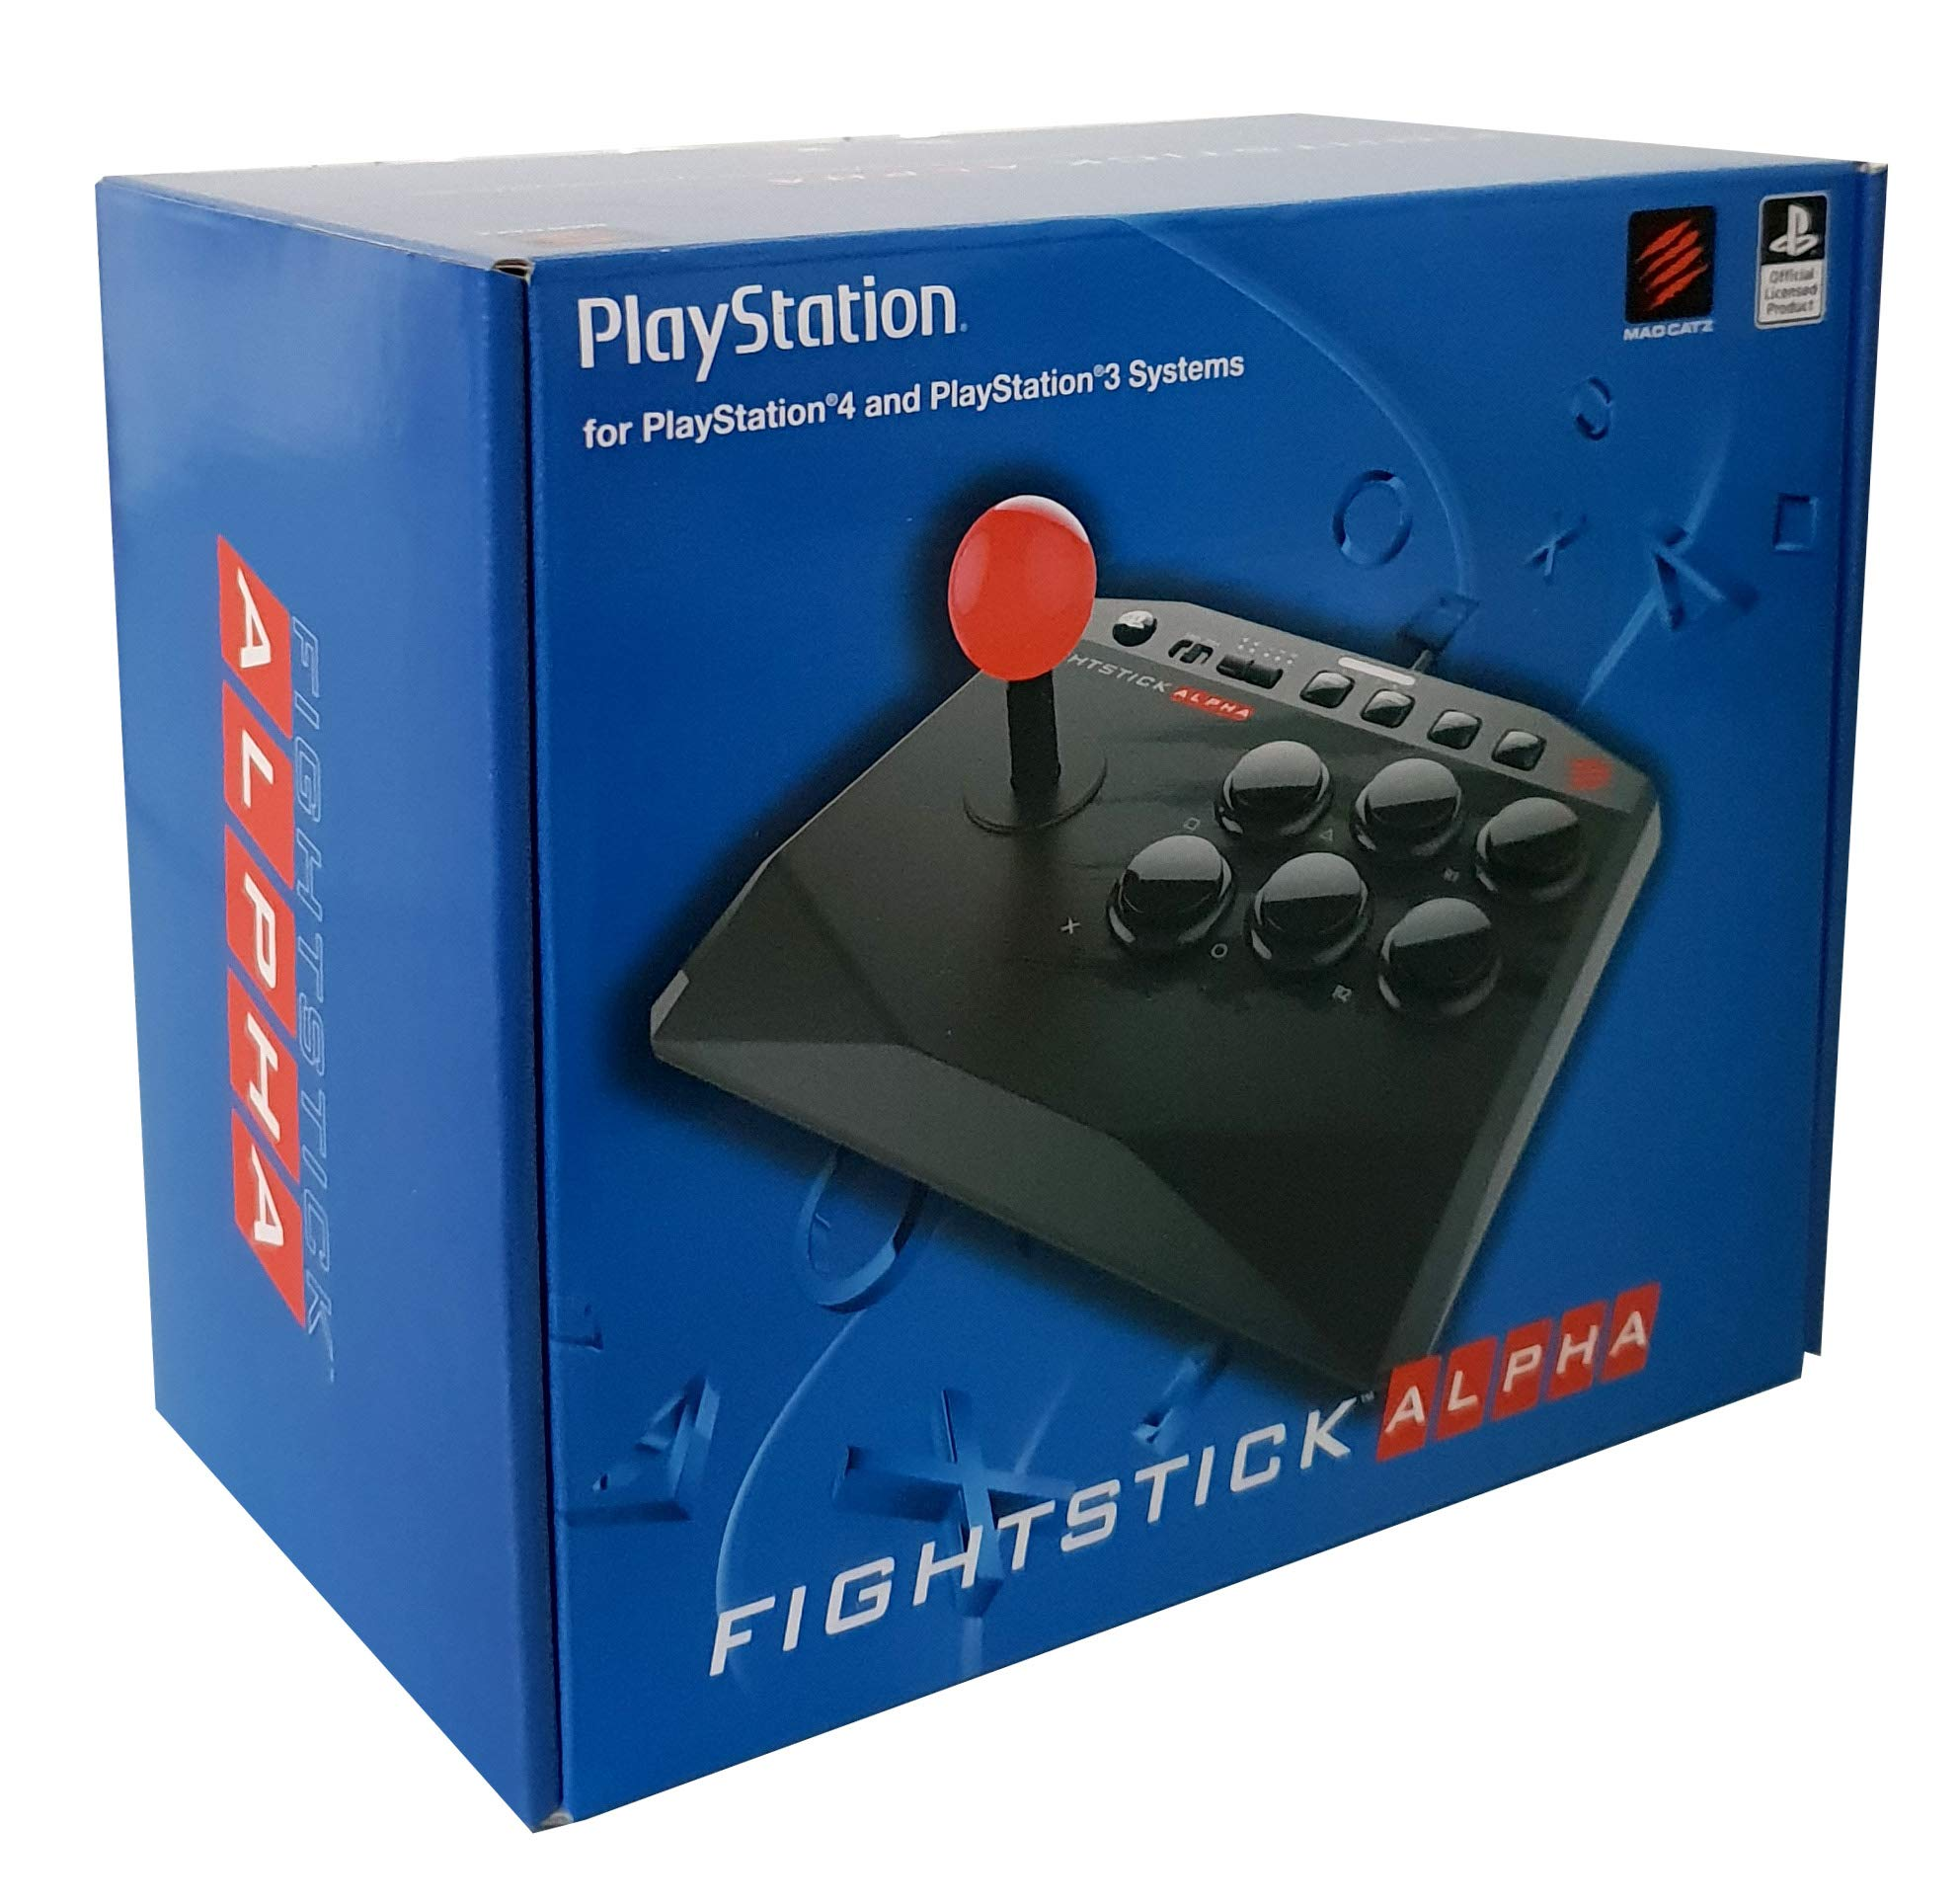 Mad Catz Arcade FightStick Alpha for PS4 / PS3